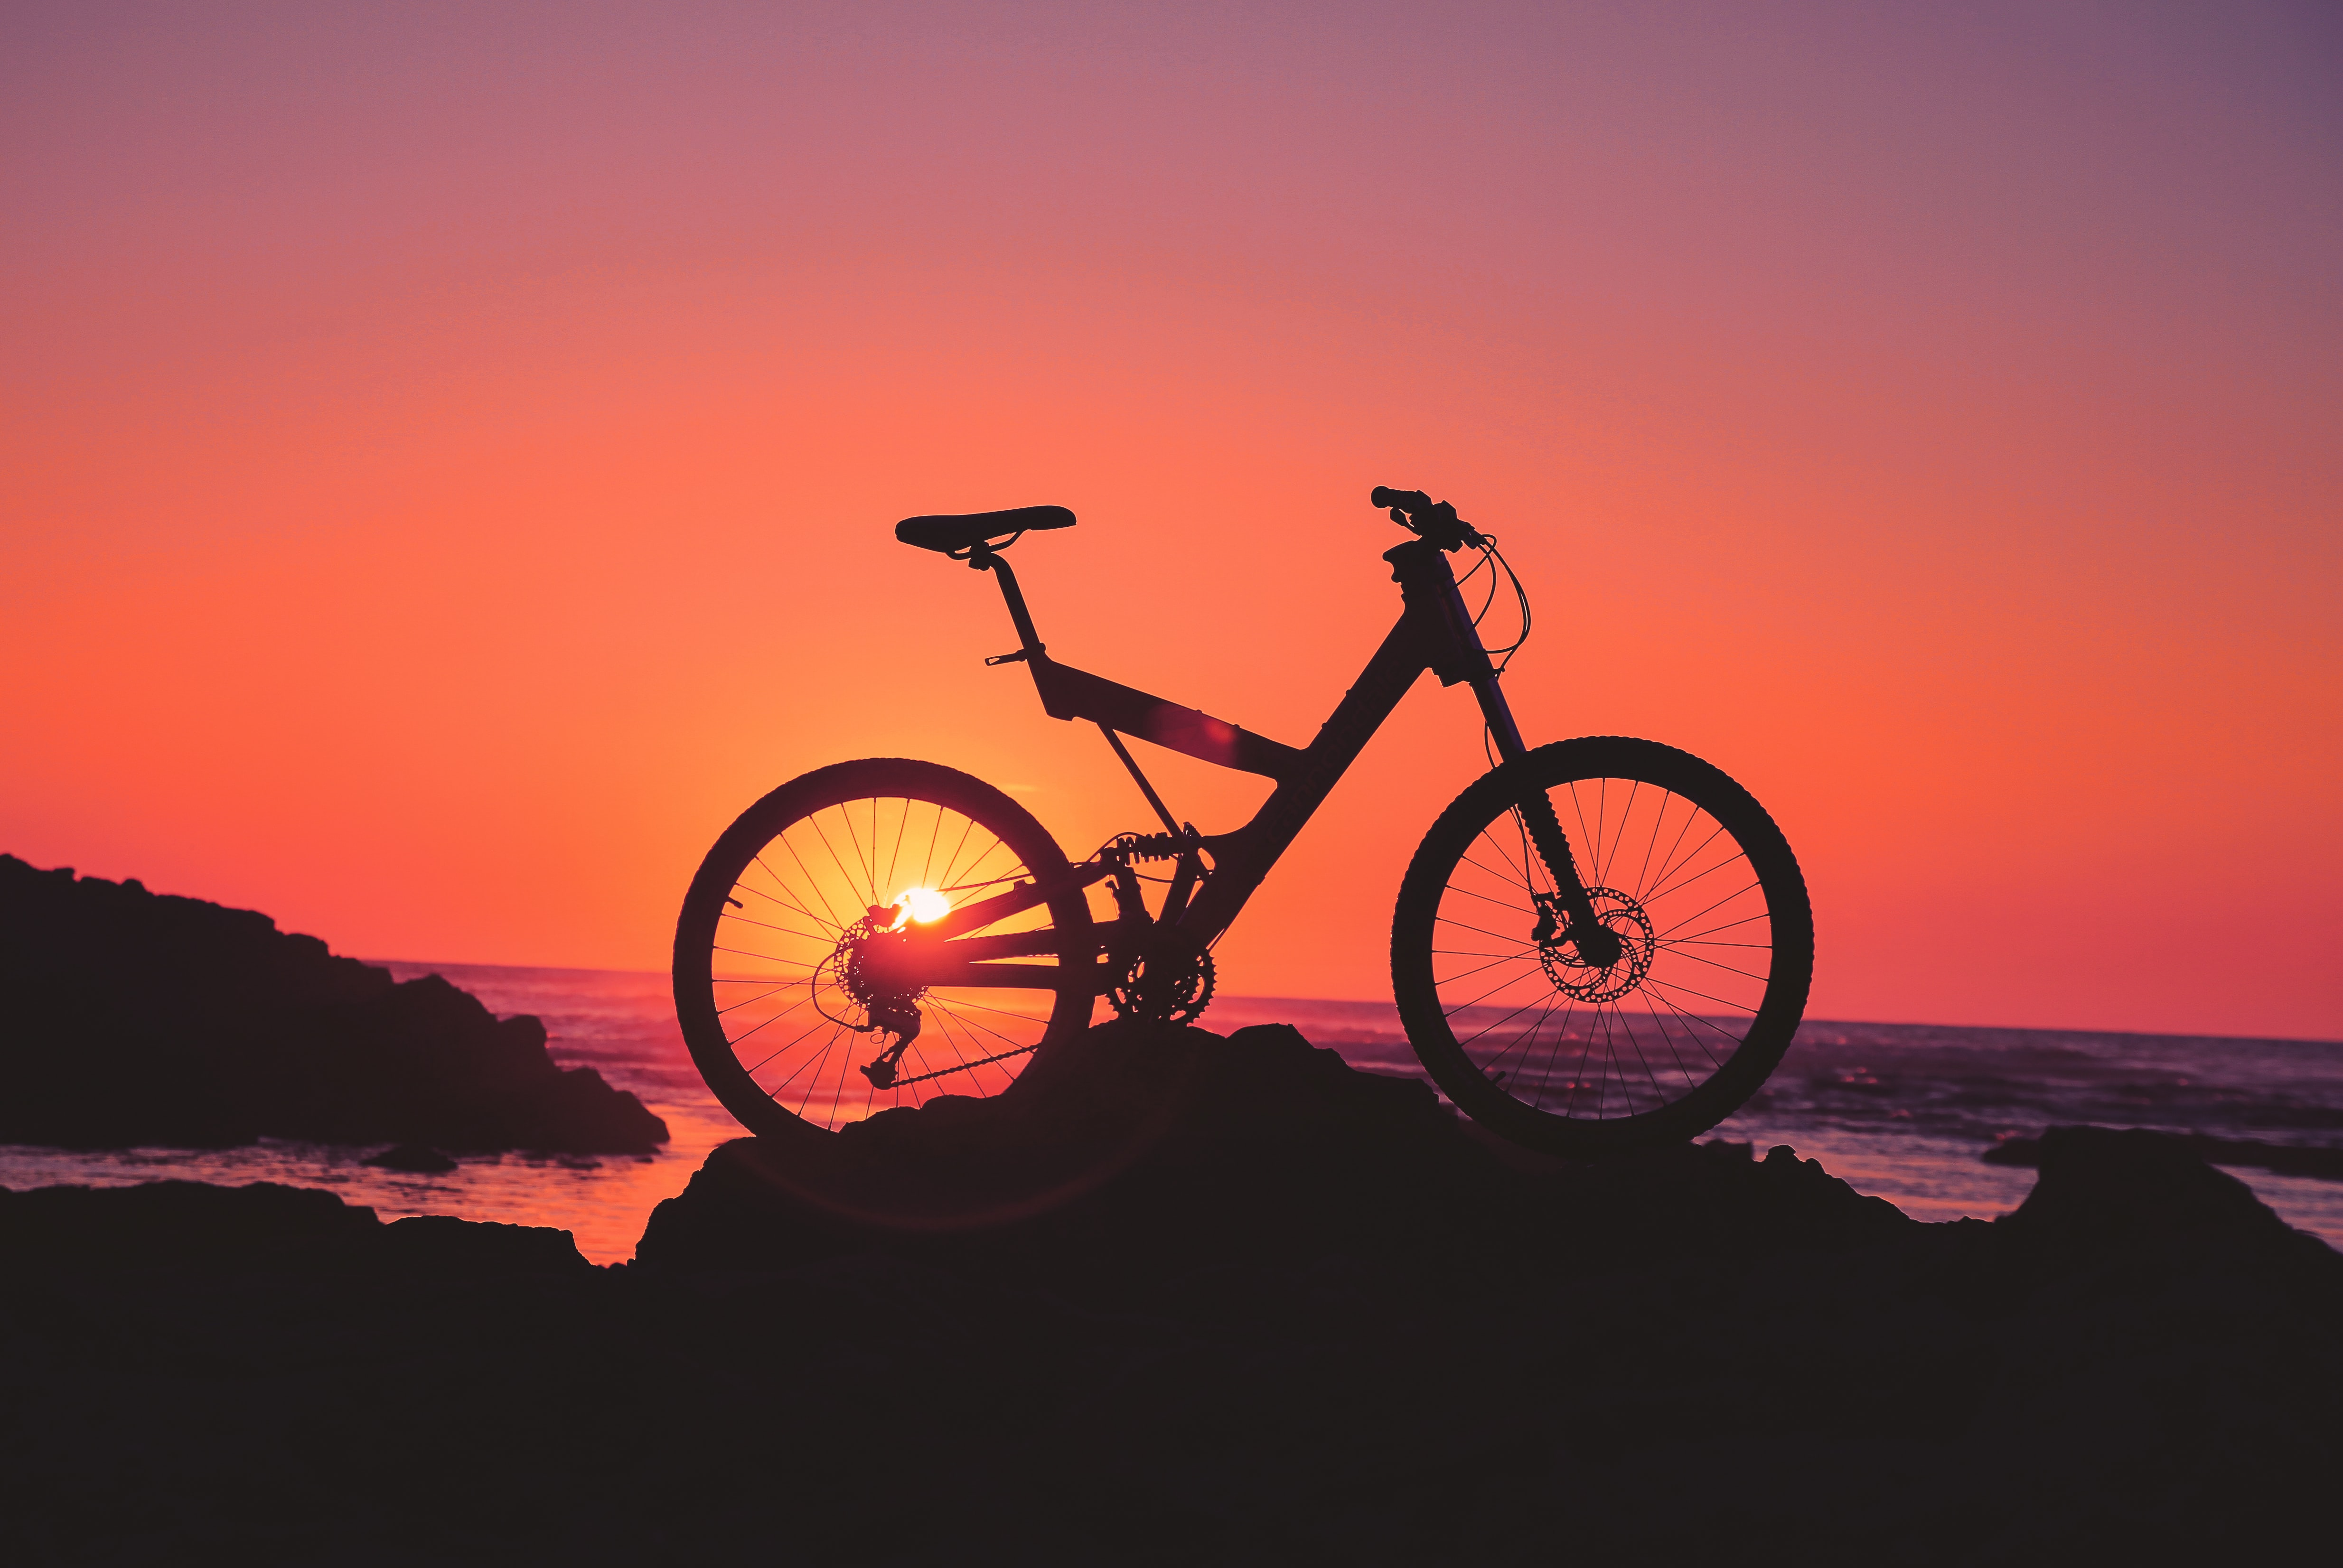 silhouette of a black bicycle during sunset